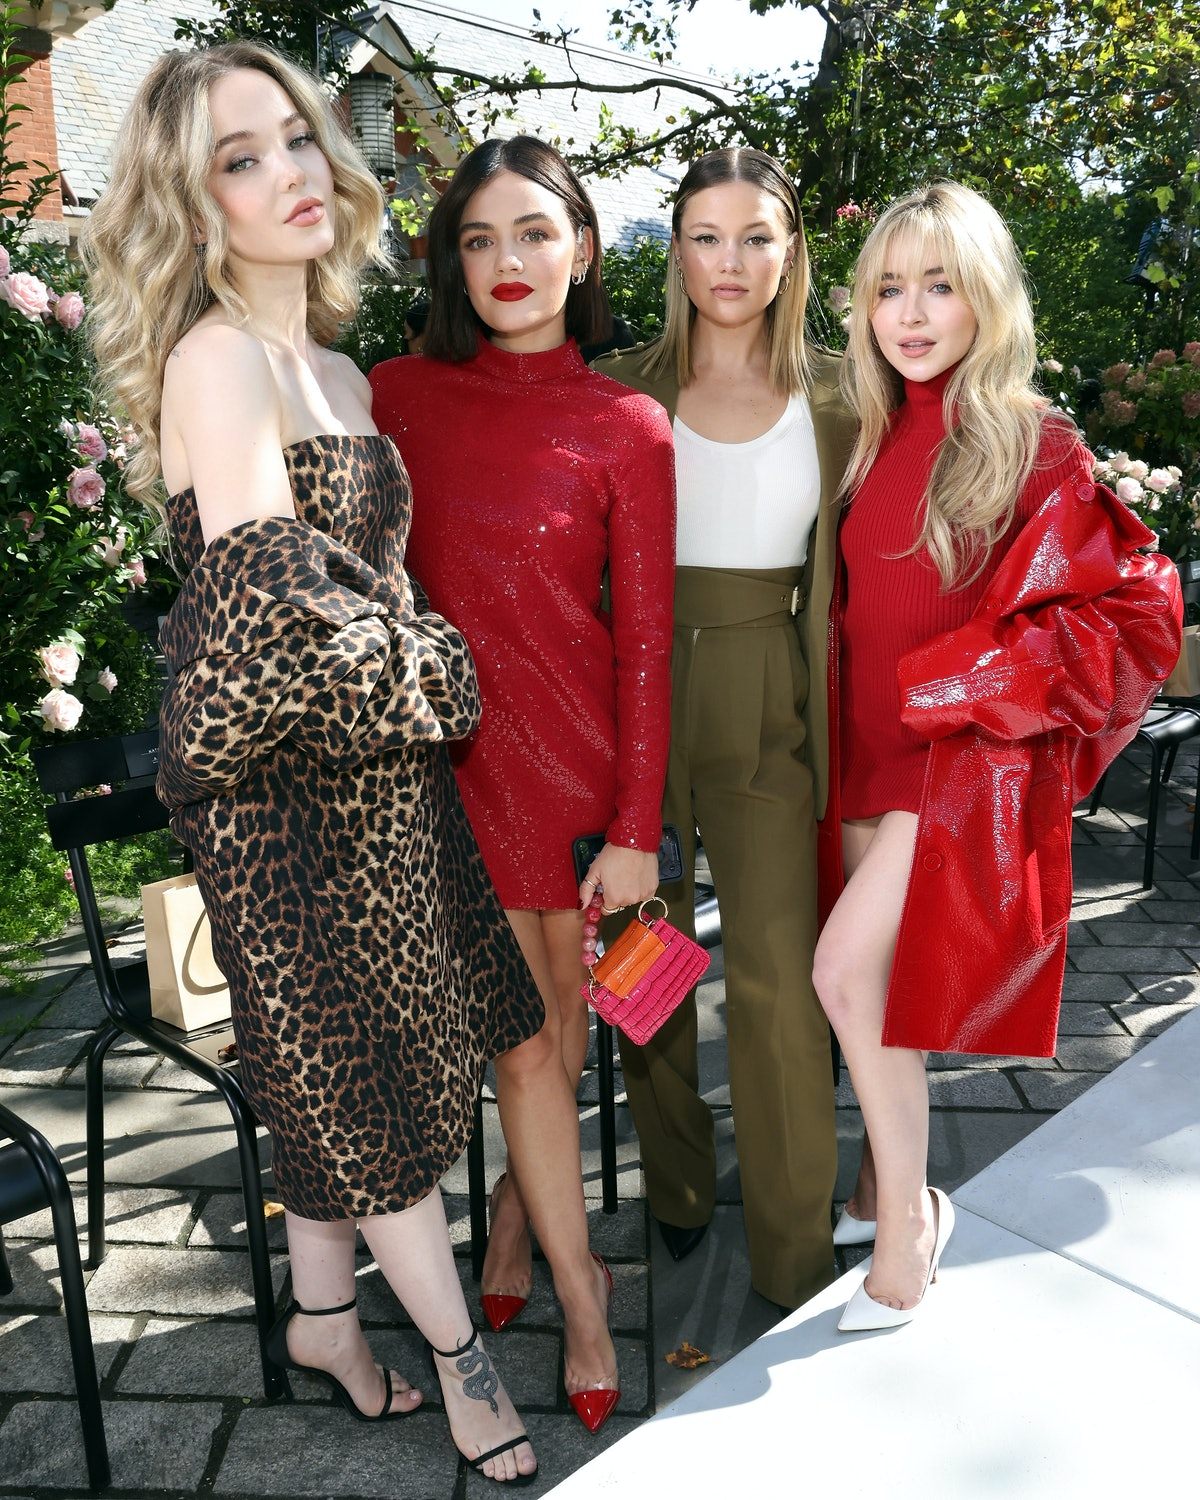 Dove Cameron, Lucy Hale, Olivia Holt, and Sabrina Carpenter attend the Michael Kors S/S 2022 show d...